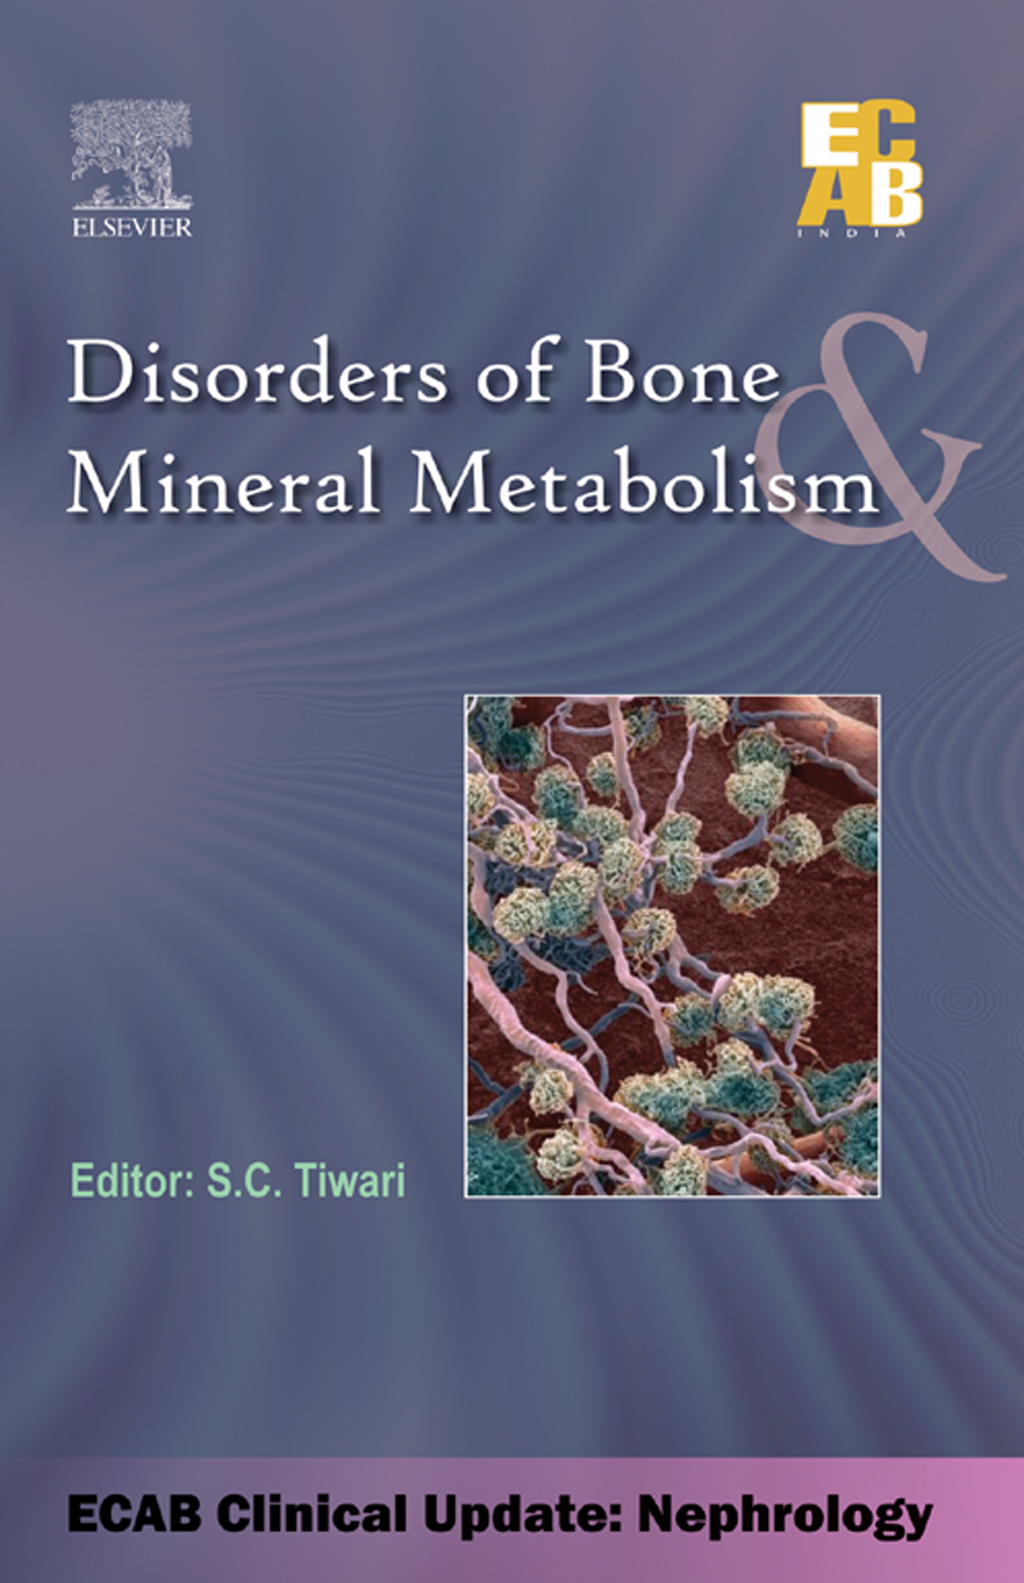 Disorders of Bone & Mineral Metabolism - ECAB